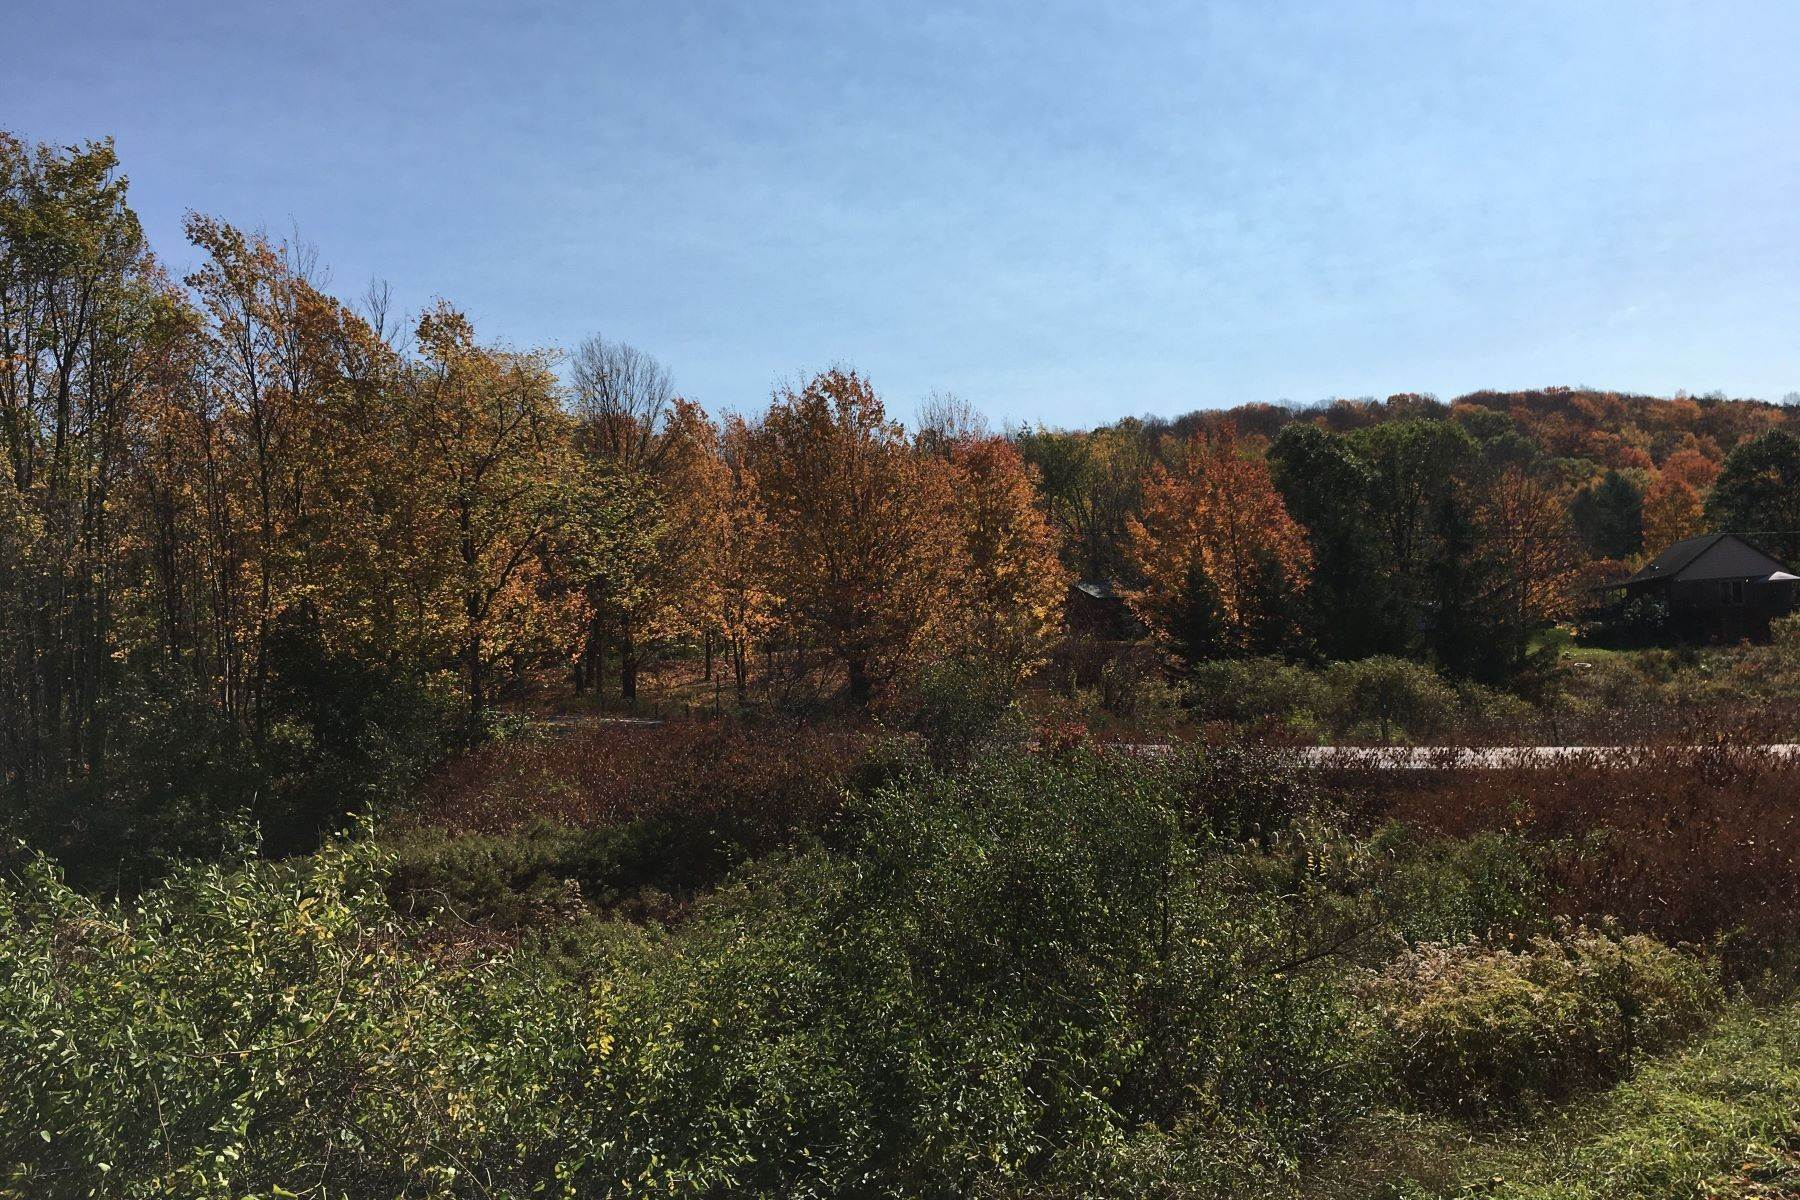 Land for Sale at 0 Oatman Lane, Granville, NY 12832 0 Oatman Lane Granville, New York 12832 United States